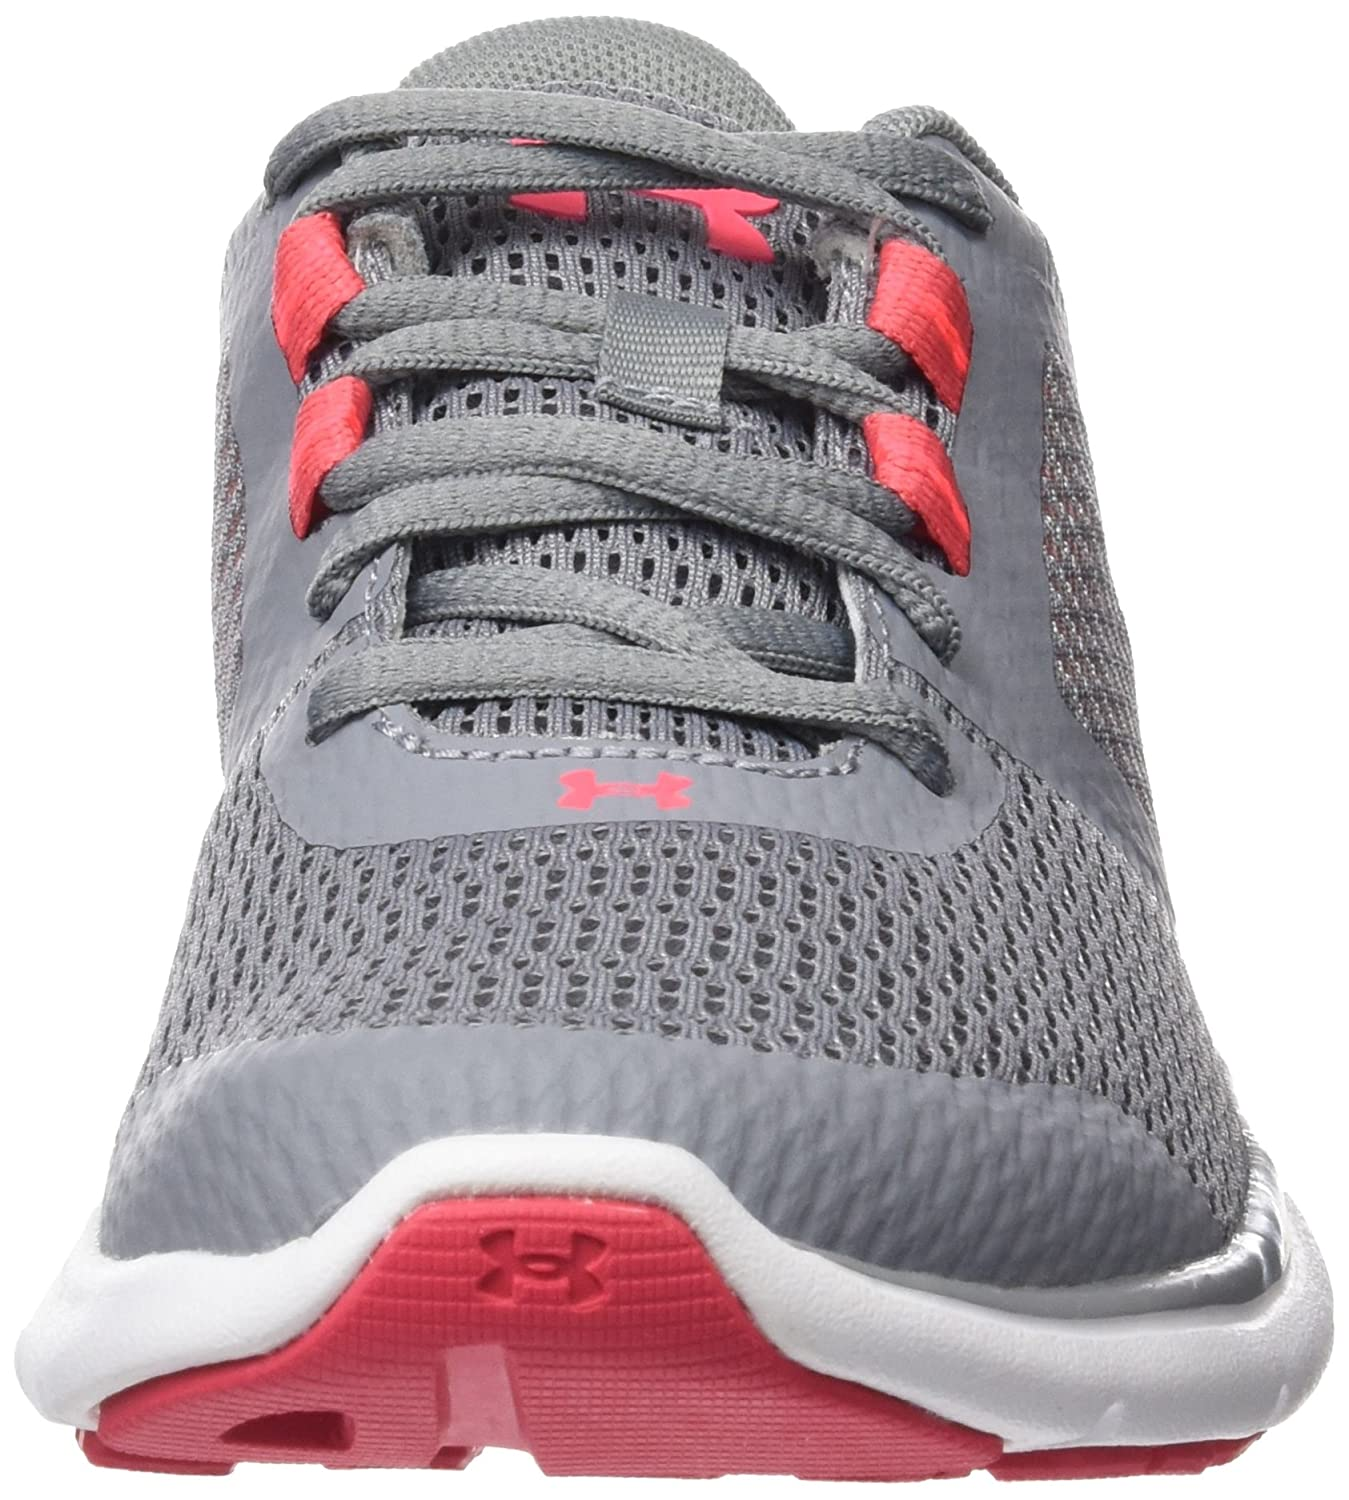 Under Armour Women's Fuse FST Cross-Country Running Shoe B0777WTYV5 6.5 B(M) US|Steel/Coral Cove